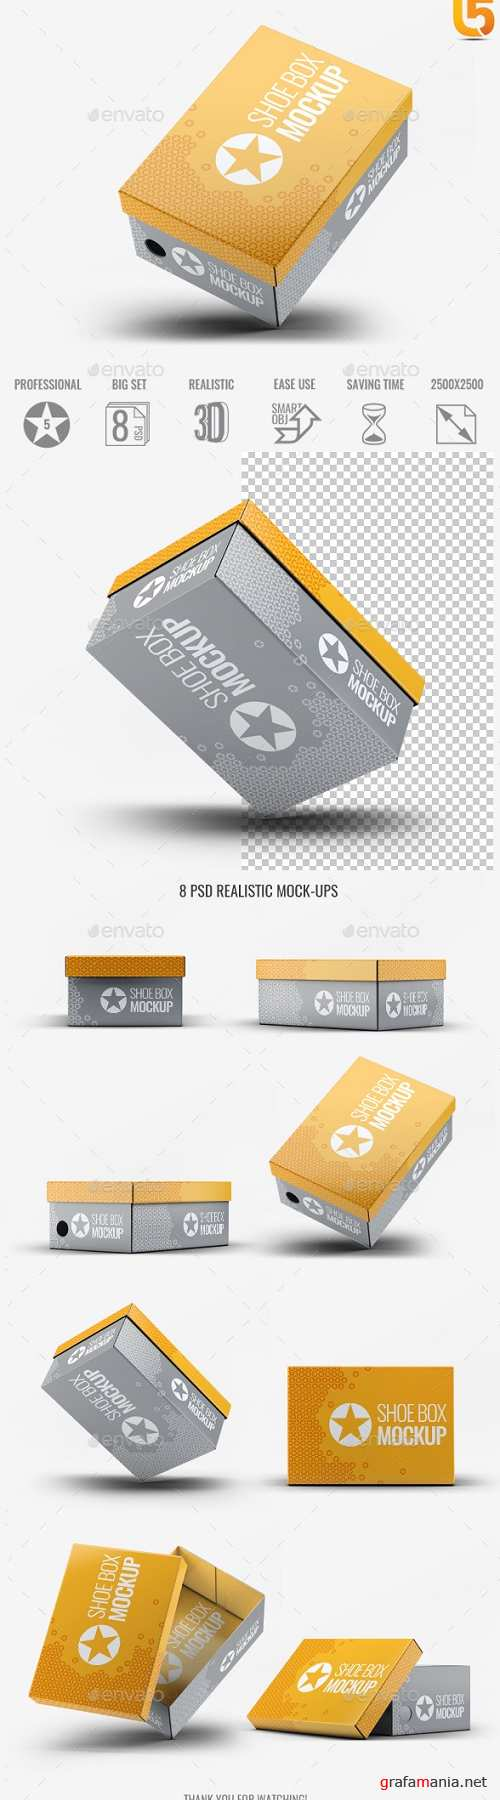 Milk or Juice Small Box Mock-Up - 21799404